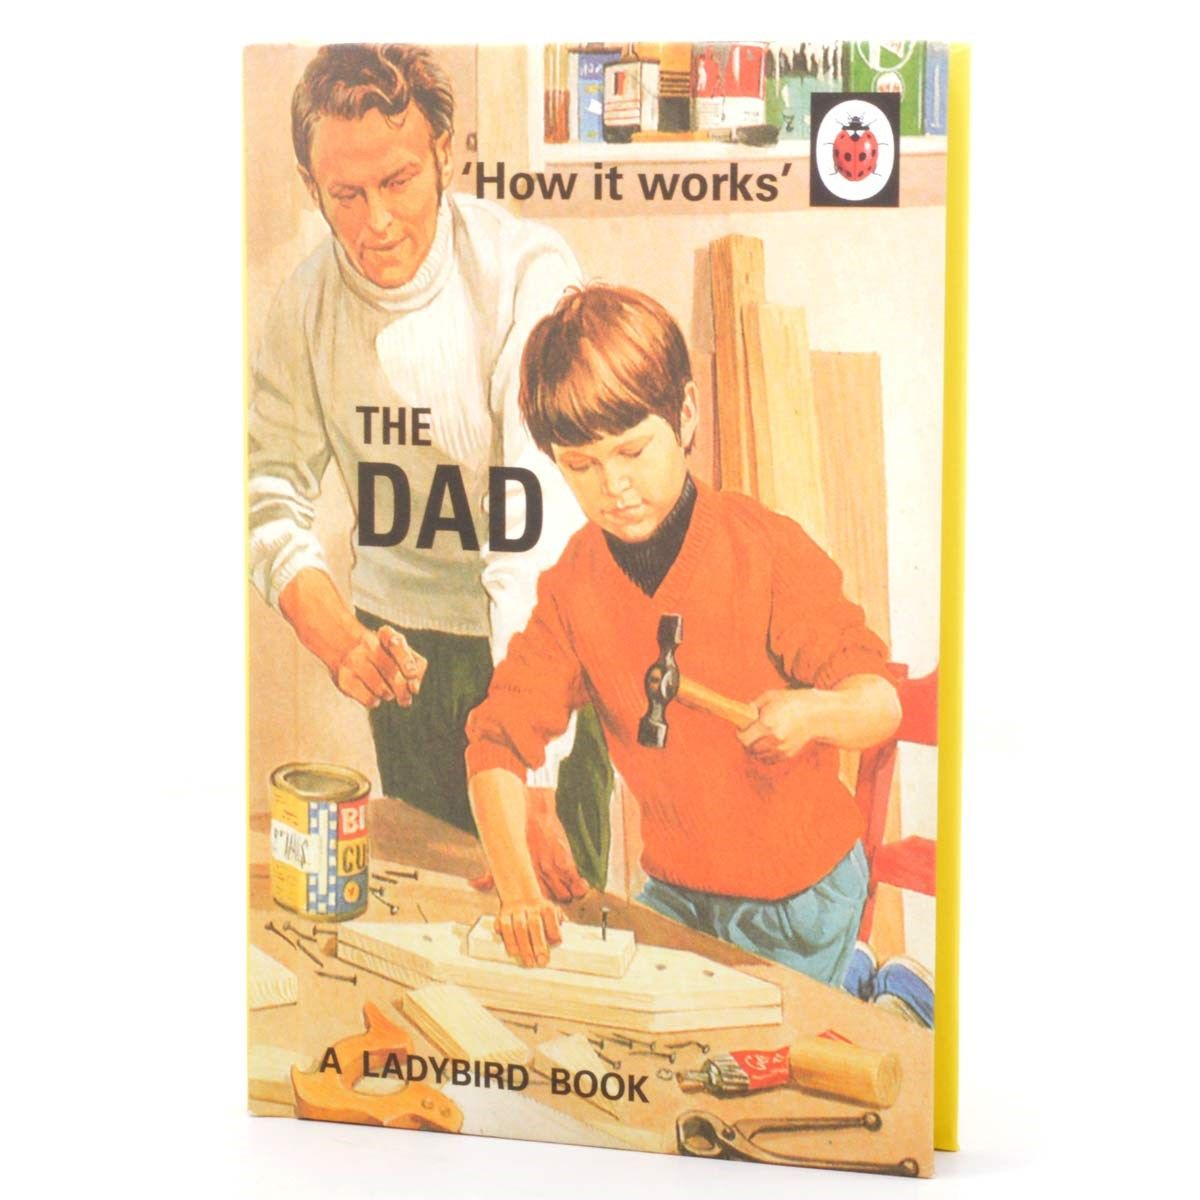 The Ladybird Book Of The DAD The children's favourites